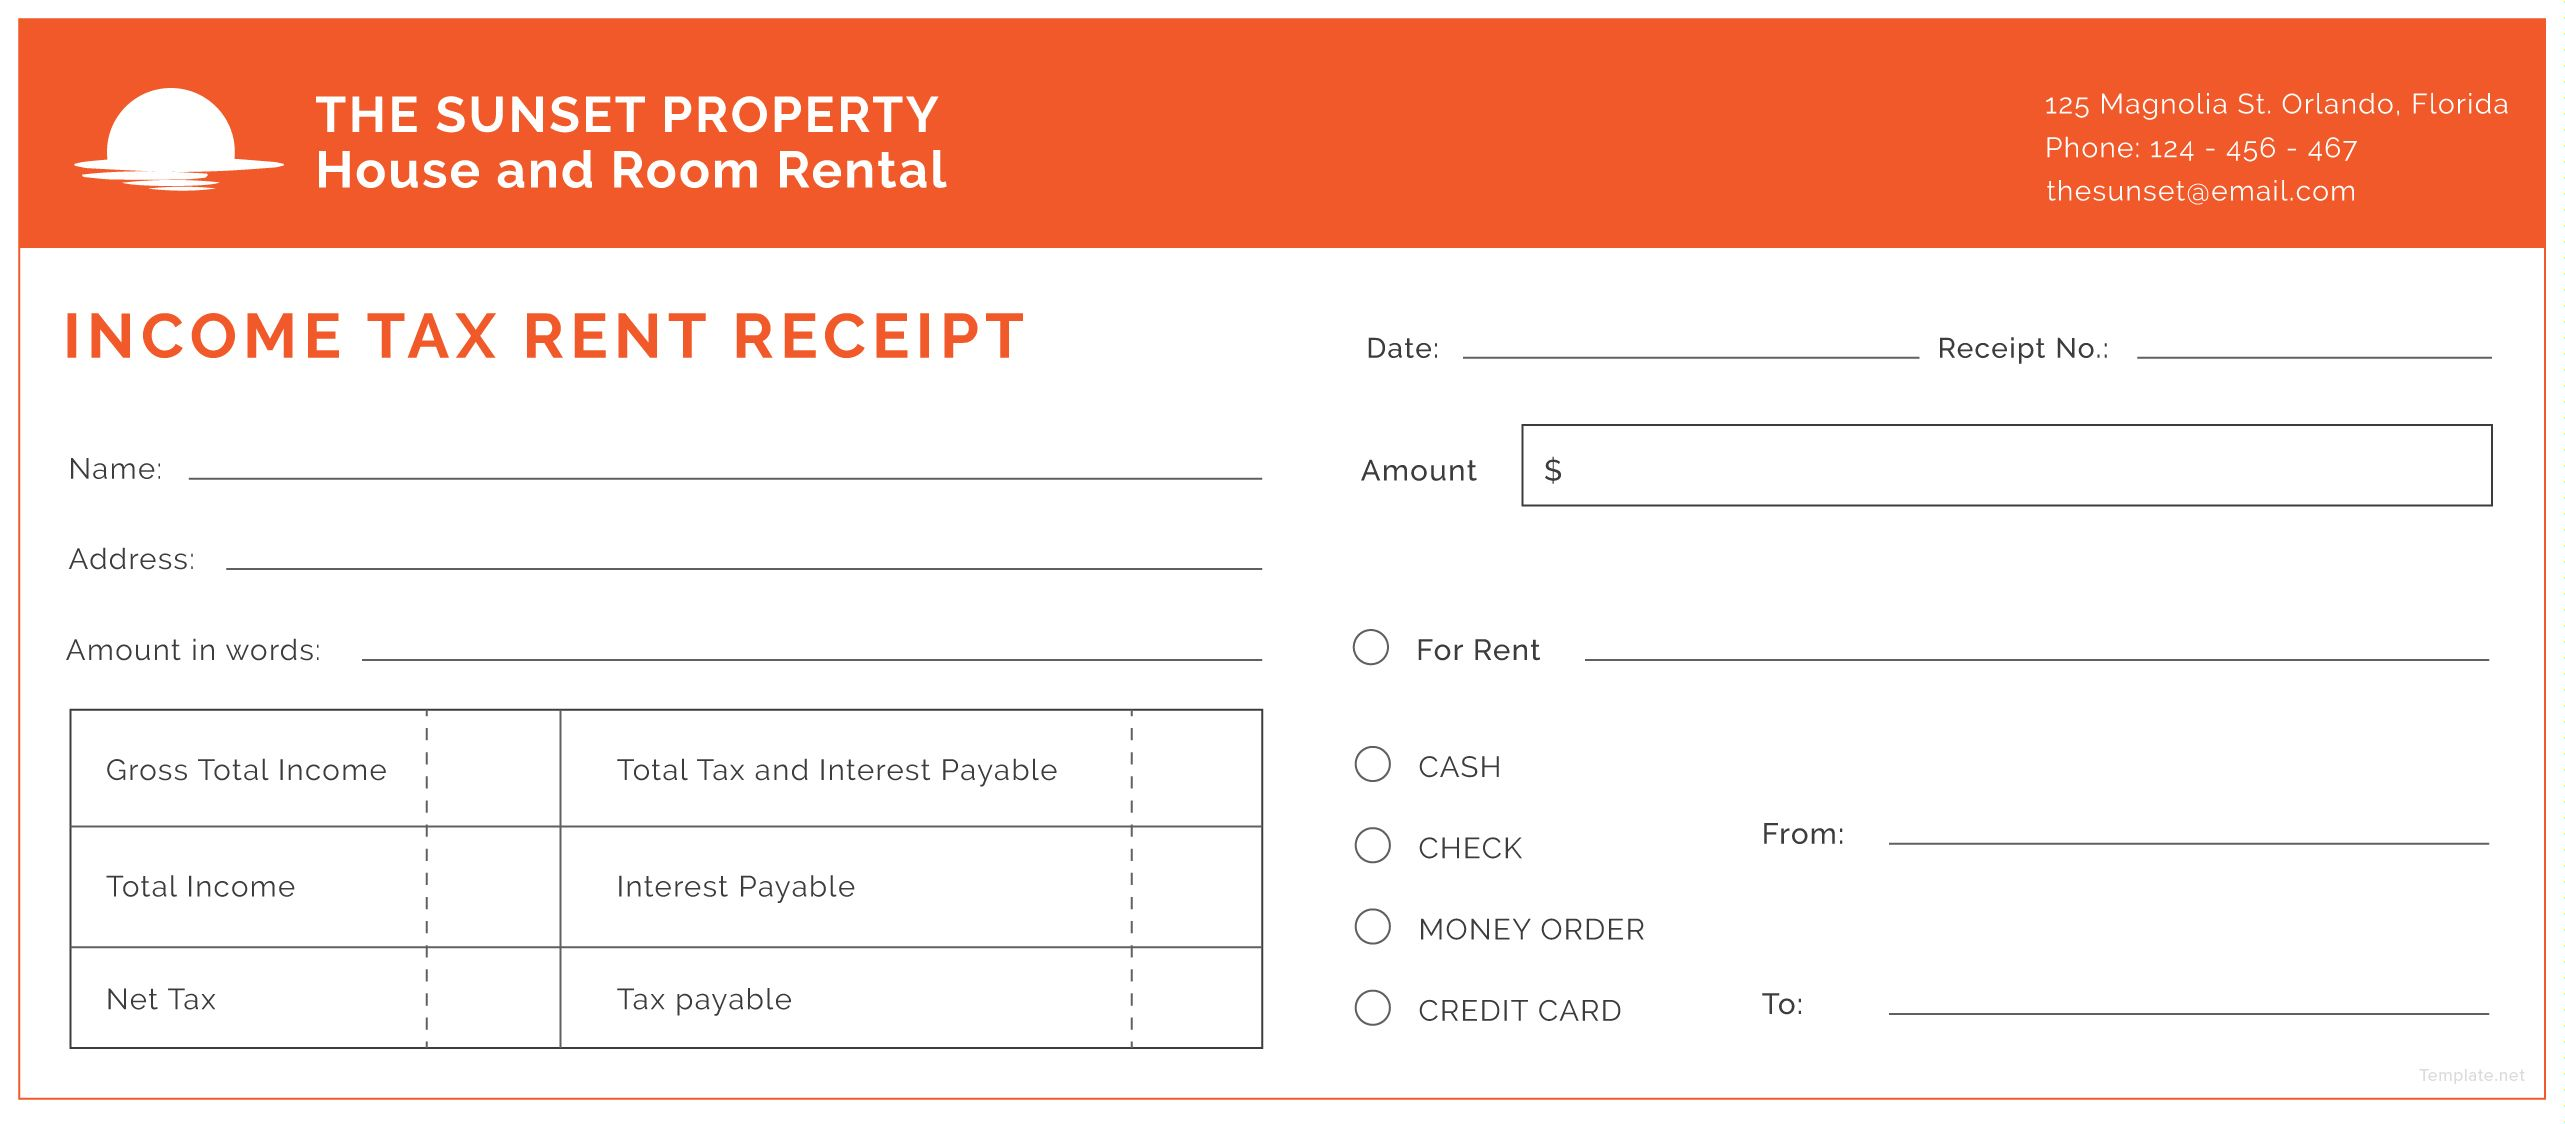 Free Rent Receipts Awesome Download Income Tax Rent Receipt Template For Free In Illustrator .